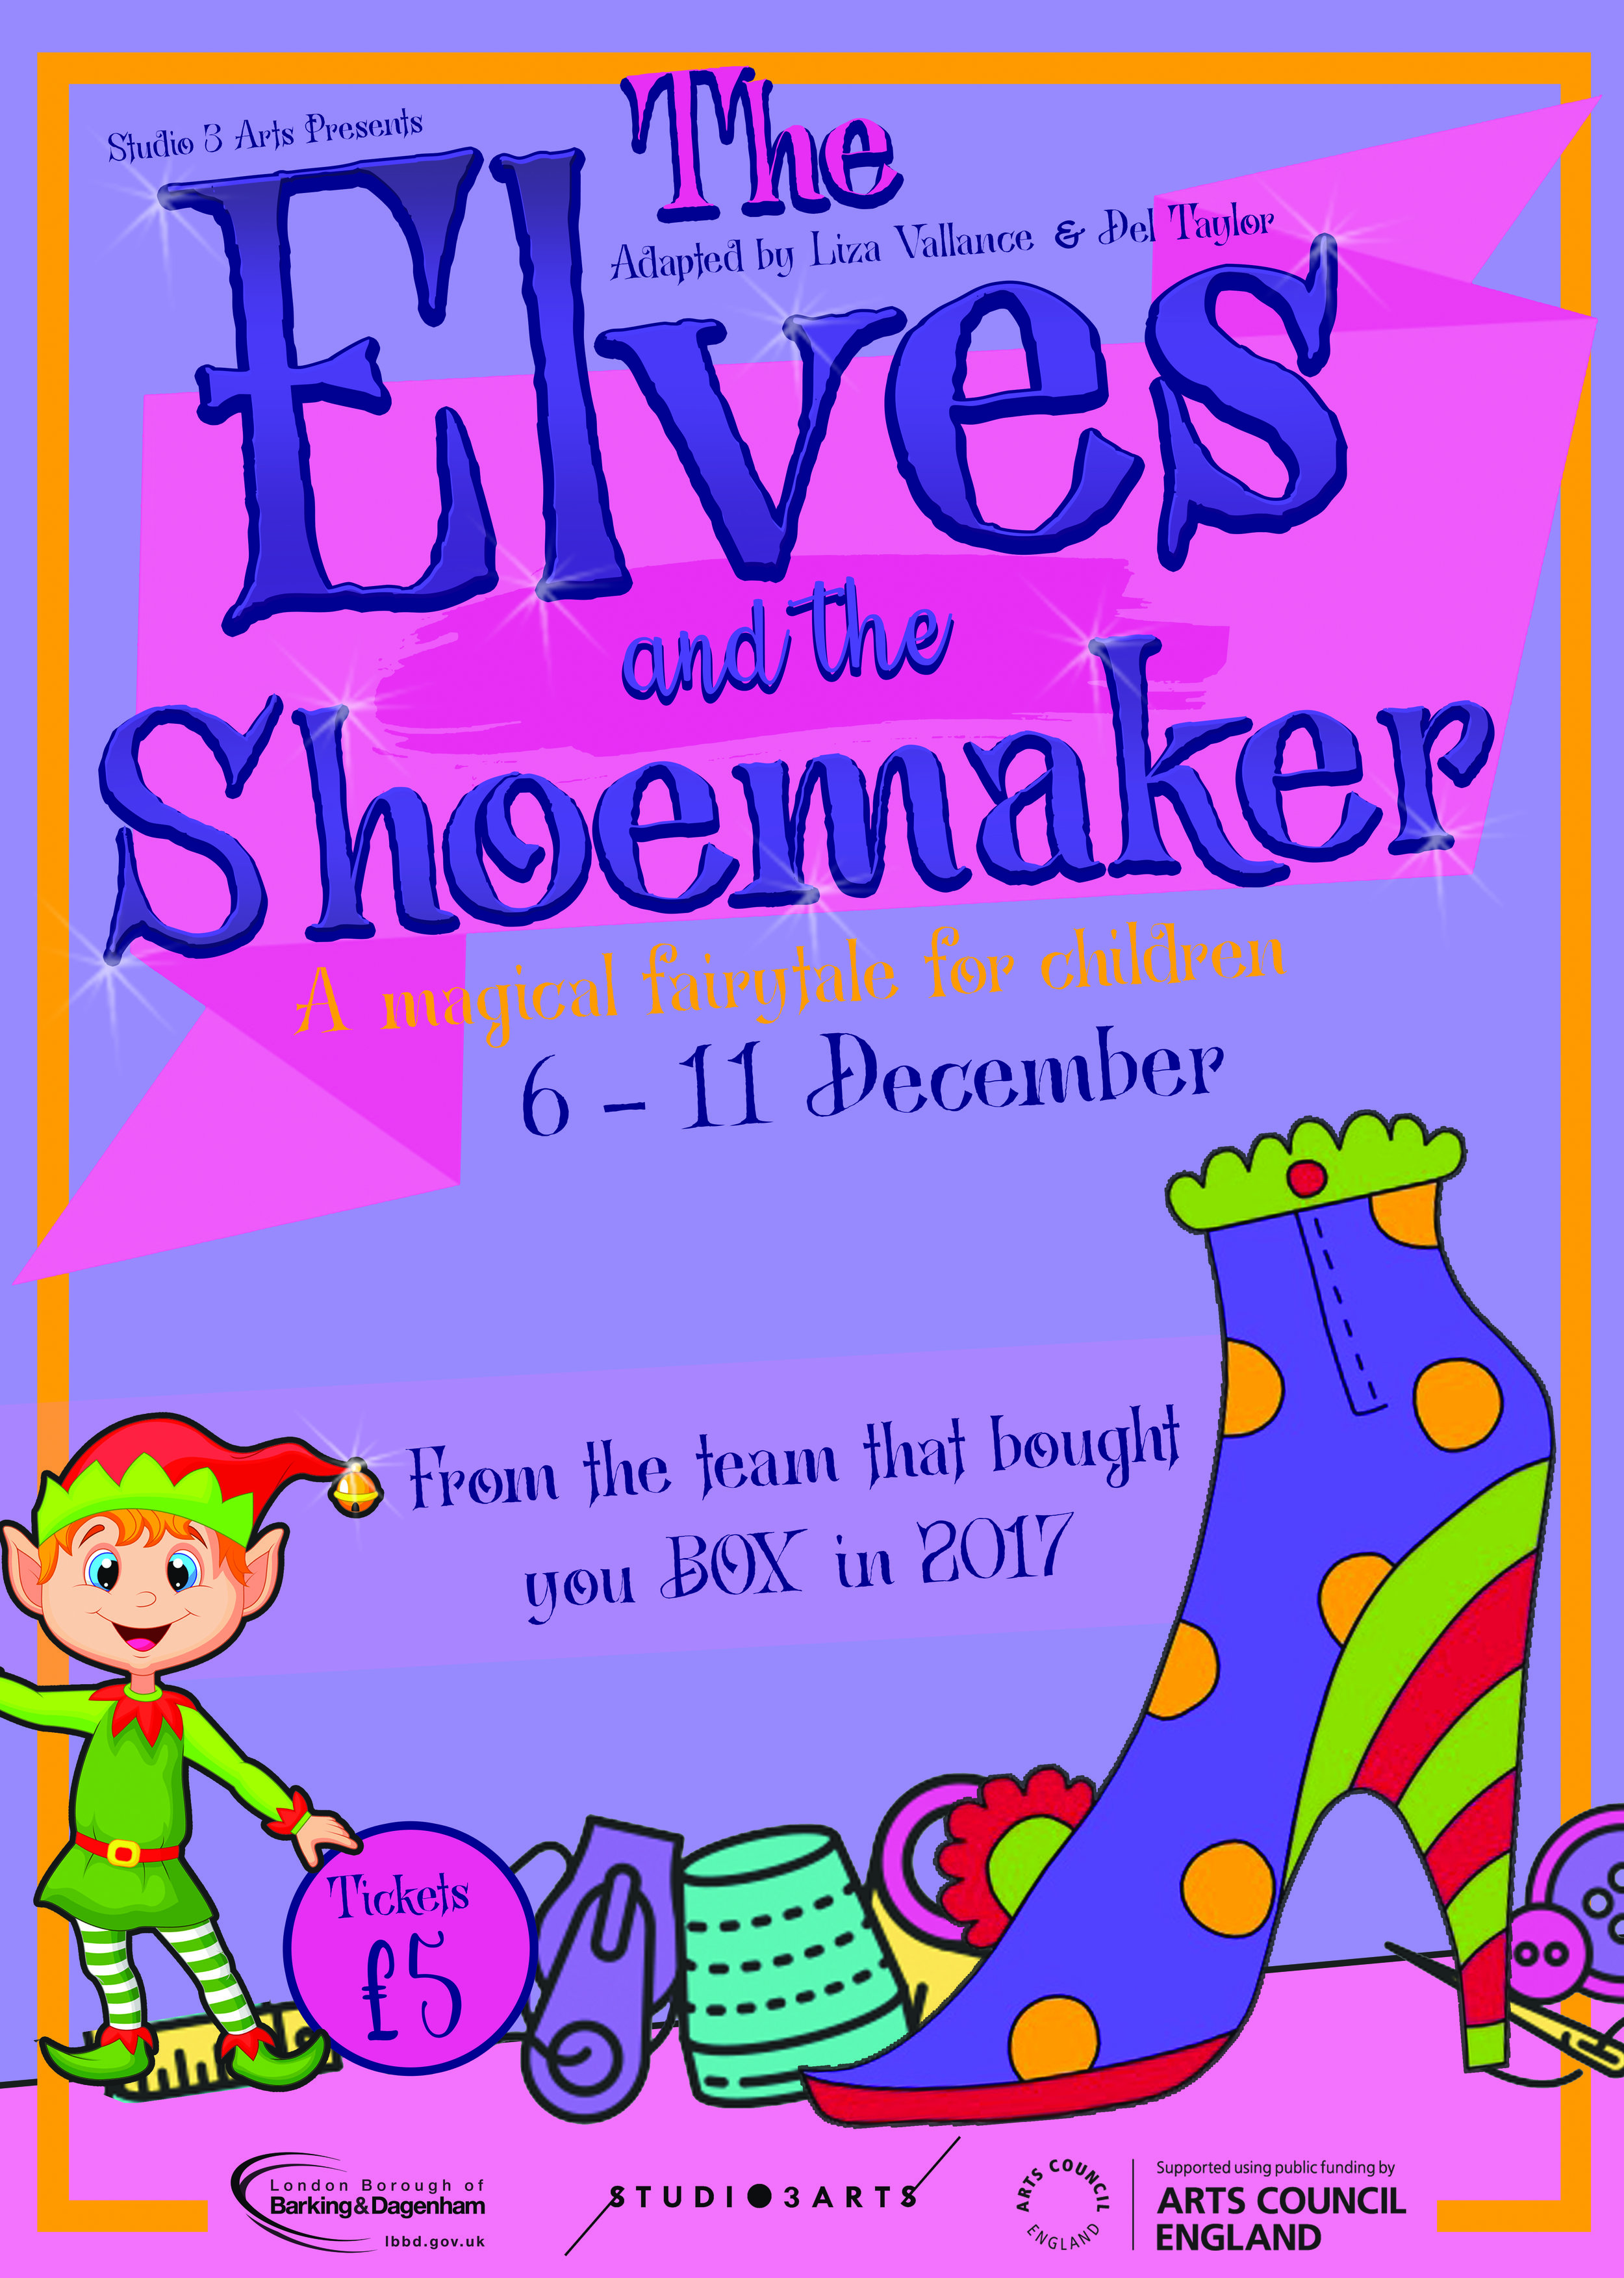 """The Elves and The Shoemaker. - Directed by Liza VallanceDesign Del Taylor Starring Tom mangan and Maria Omakinwa""""We went to see The Elves and the Shoemaker yesterday at Studio 3 Arts and what a fantastic time we had. the actors are just brilliant, funny and so energetic. Our daughter and all the kids there were enjoying themselves so much, shouting in all the right places, totally in awe of the magic of the show!!! And I think we enjoyed it as much as the kids. Five stars. well done to all those involved!! A real treat."""" Carole Spike-Robertson""""Studio 3 Arts do amazing things!! I have seen lots of live streams on various S3A projects to date. However, this weekend I was lucky enough to get tickets to the 'Elves and the Shoemaker' for my family. It was so well done. An old story brought in to the 21st century, with something for everyone. It was an absolute hoot. Loved the set - simple but clever and really effective. It was the perfect length, keeping the young audience engaged throughout. The actors were fantastic and the production was super slick. I highly recommend!!! Shall be back if there's another one next year!!""""Sliz Gillard""""As ever another brilliant event at Studio 3 Arts, a brilliant place, with a brilliant play with a wonderful message. So wonderful to see the look of amazement on the faces of the audience - young and old. Such a skill and talent from two young actors to whip the crowd into a frenzy and then quickly flip the action and atmosphere. Fab clowning and fun without being patronizing plus beautiful shoeeeeees. The set was wonderful and i particularly loved the big plates of food!!""""Melissa Lowndes"""